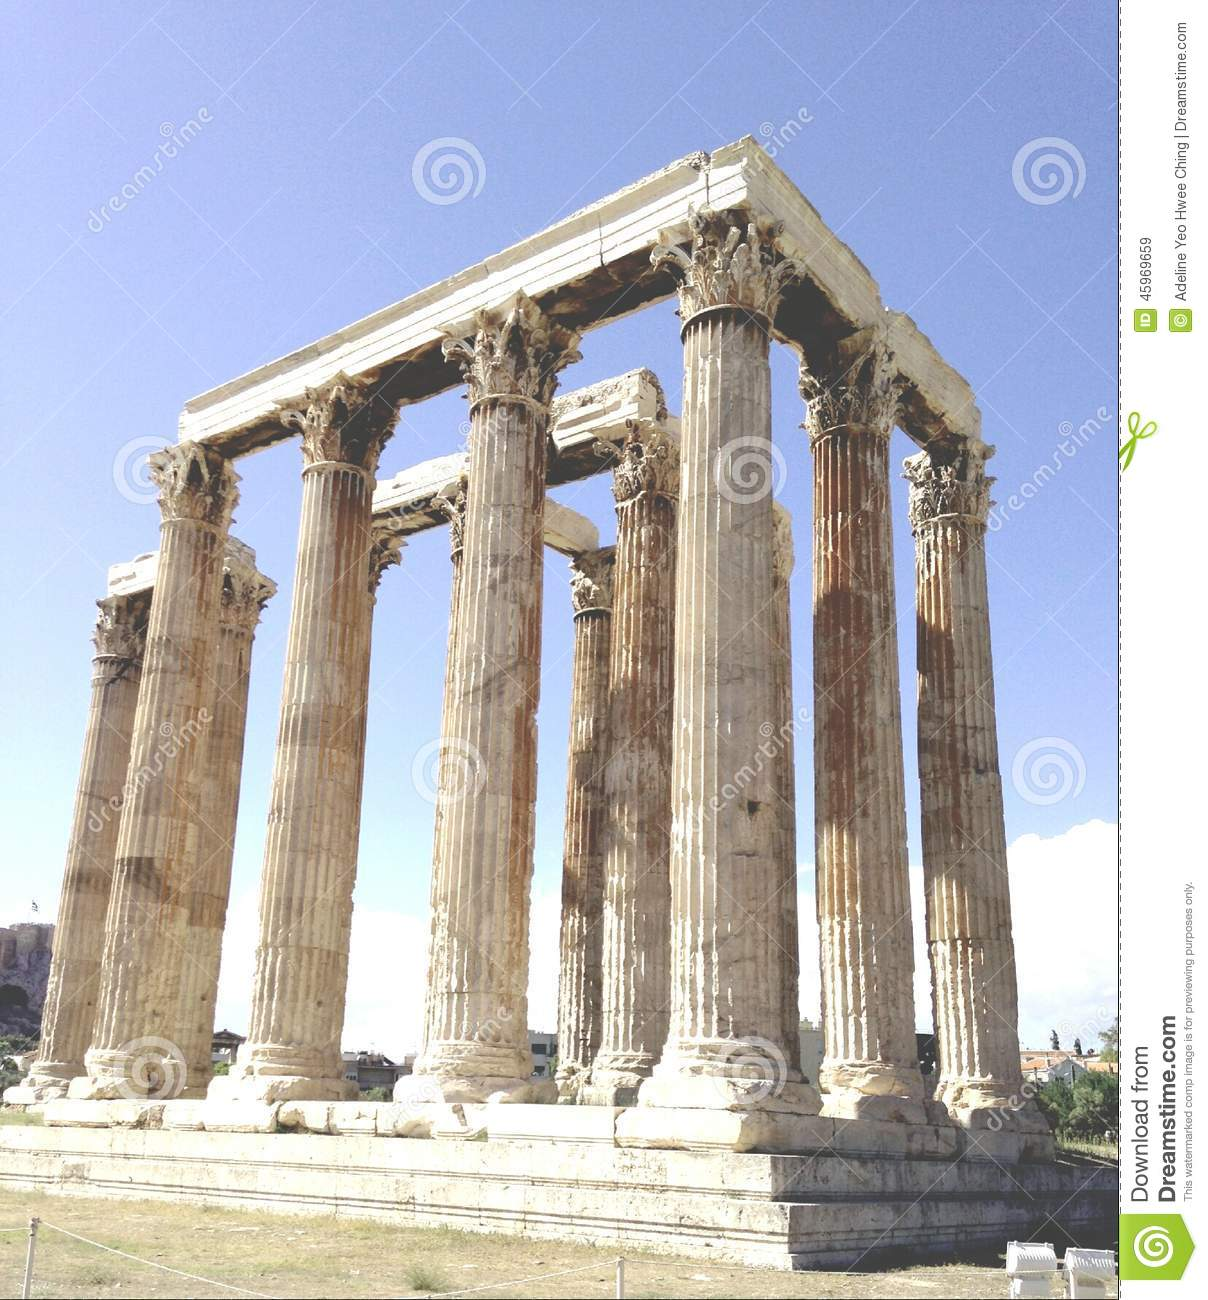 Partheon In Ruins Stock Photo - Image: 45969659